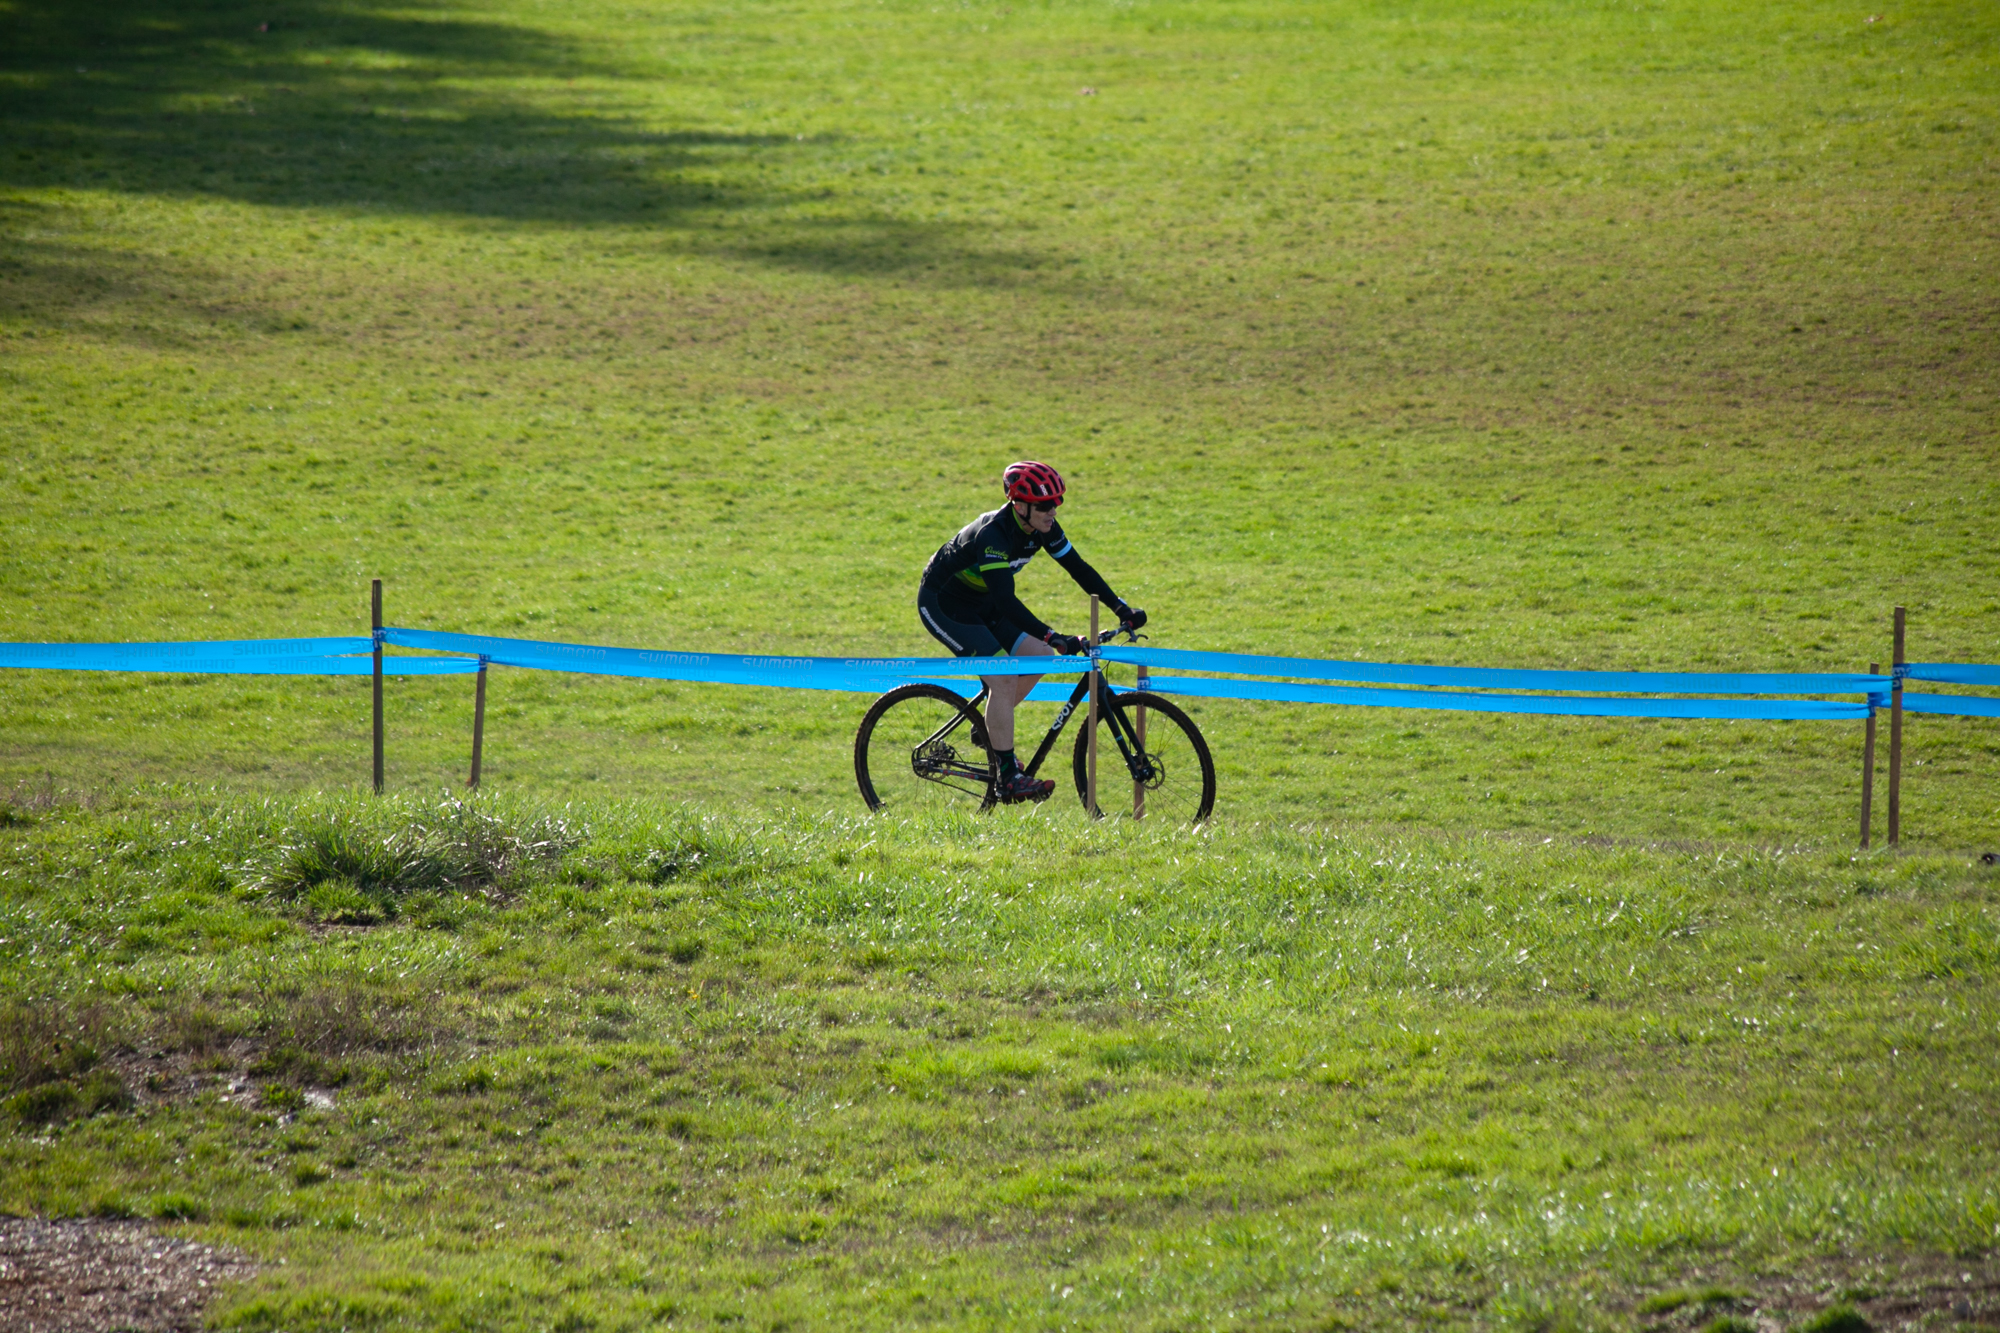 Cyclocross18_CCCX_RainierHS-115-mettlecycling.jpg